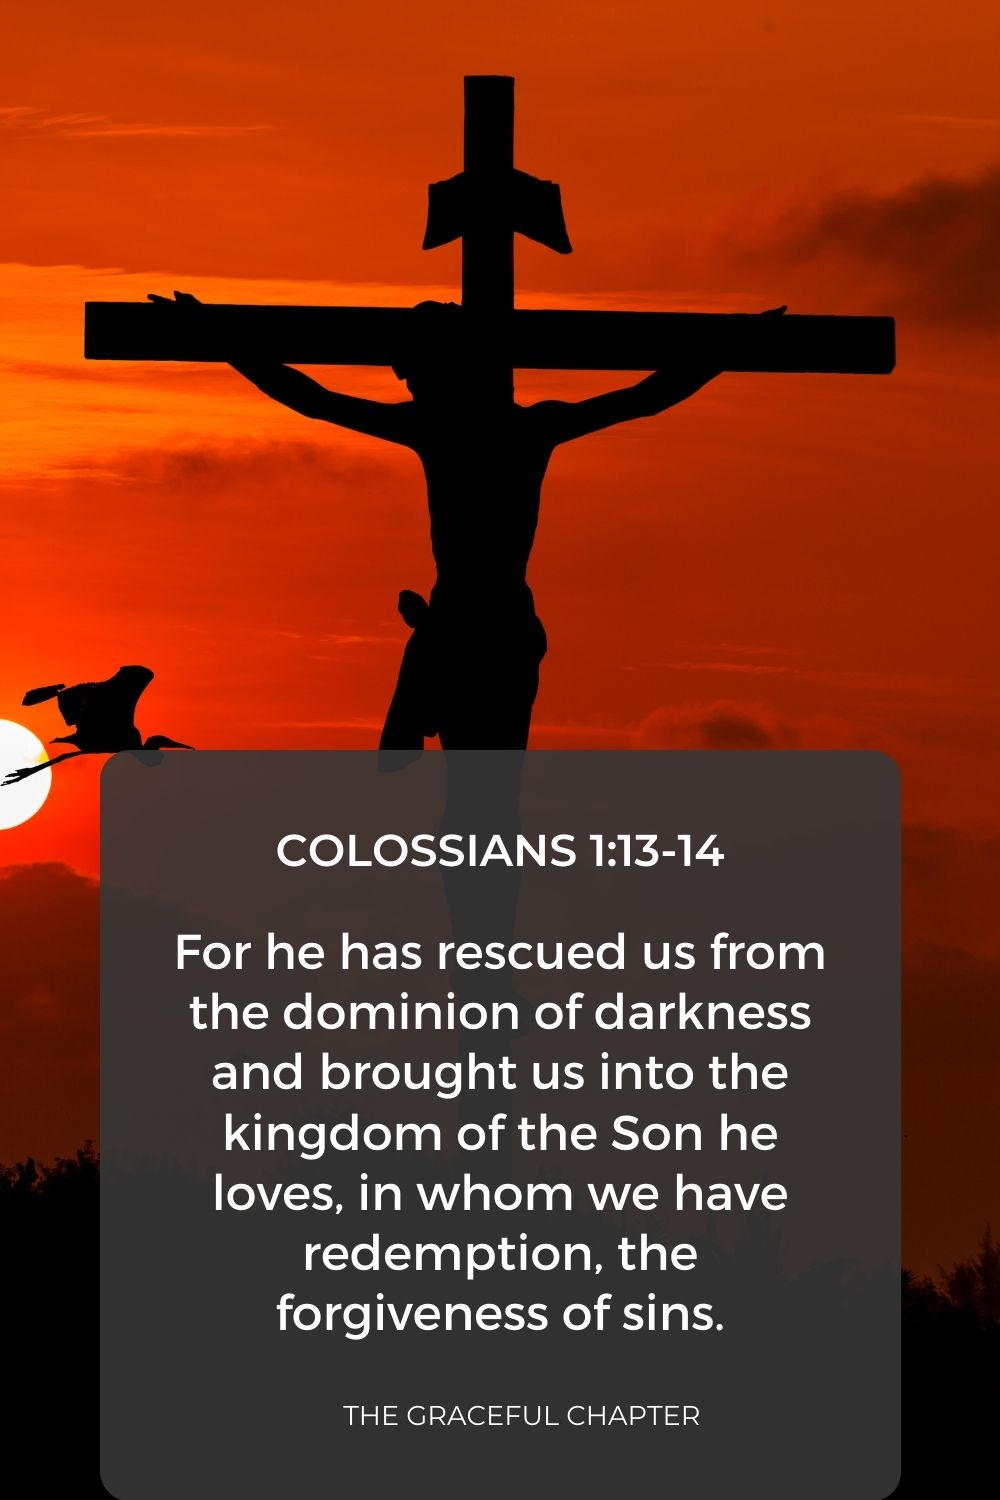 For he has rescued us from the dominion of darkness and brought us into the kingdom of the Son he loves, in whom we have redemption, the forgiveness of sins. Colossians 1:13-14